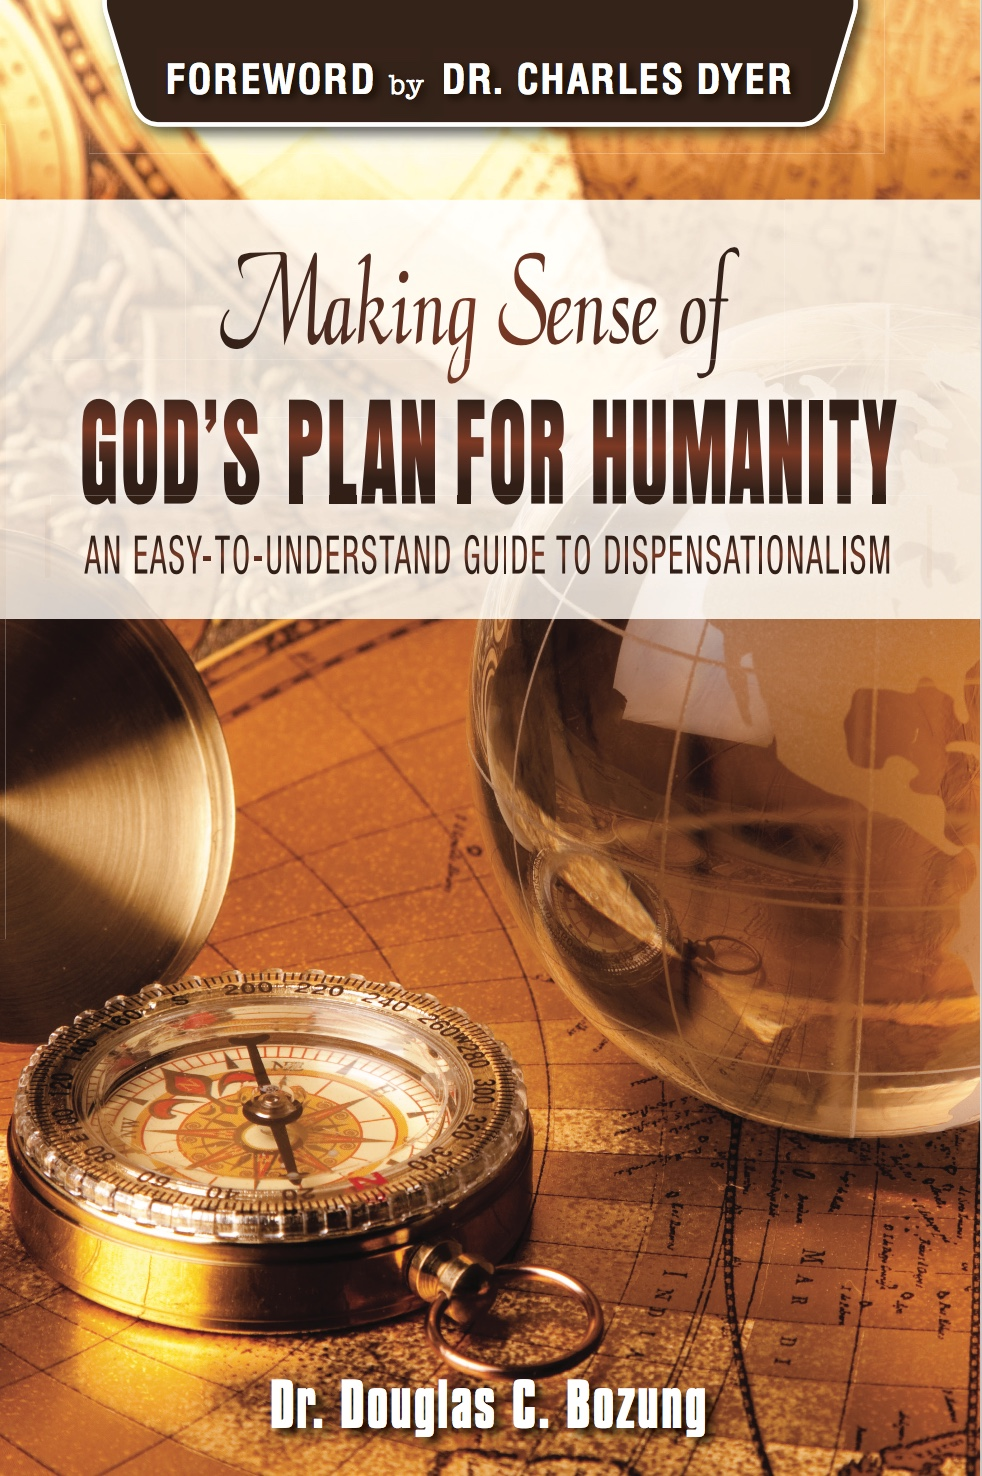 Douglas Bozung: Making Sense of God's Plan for Humanity